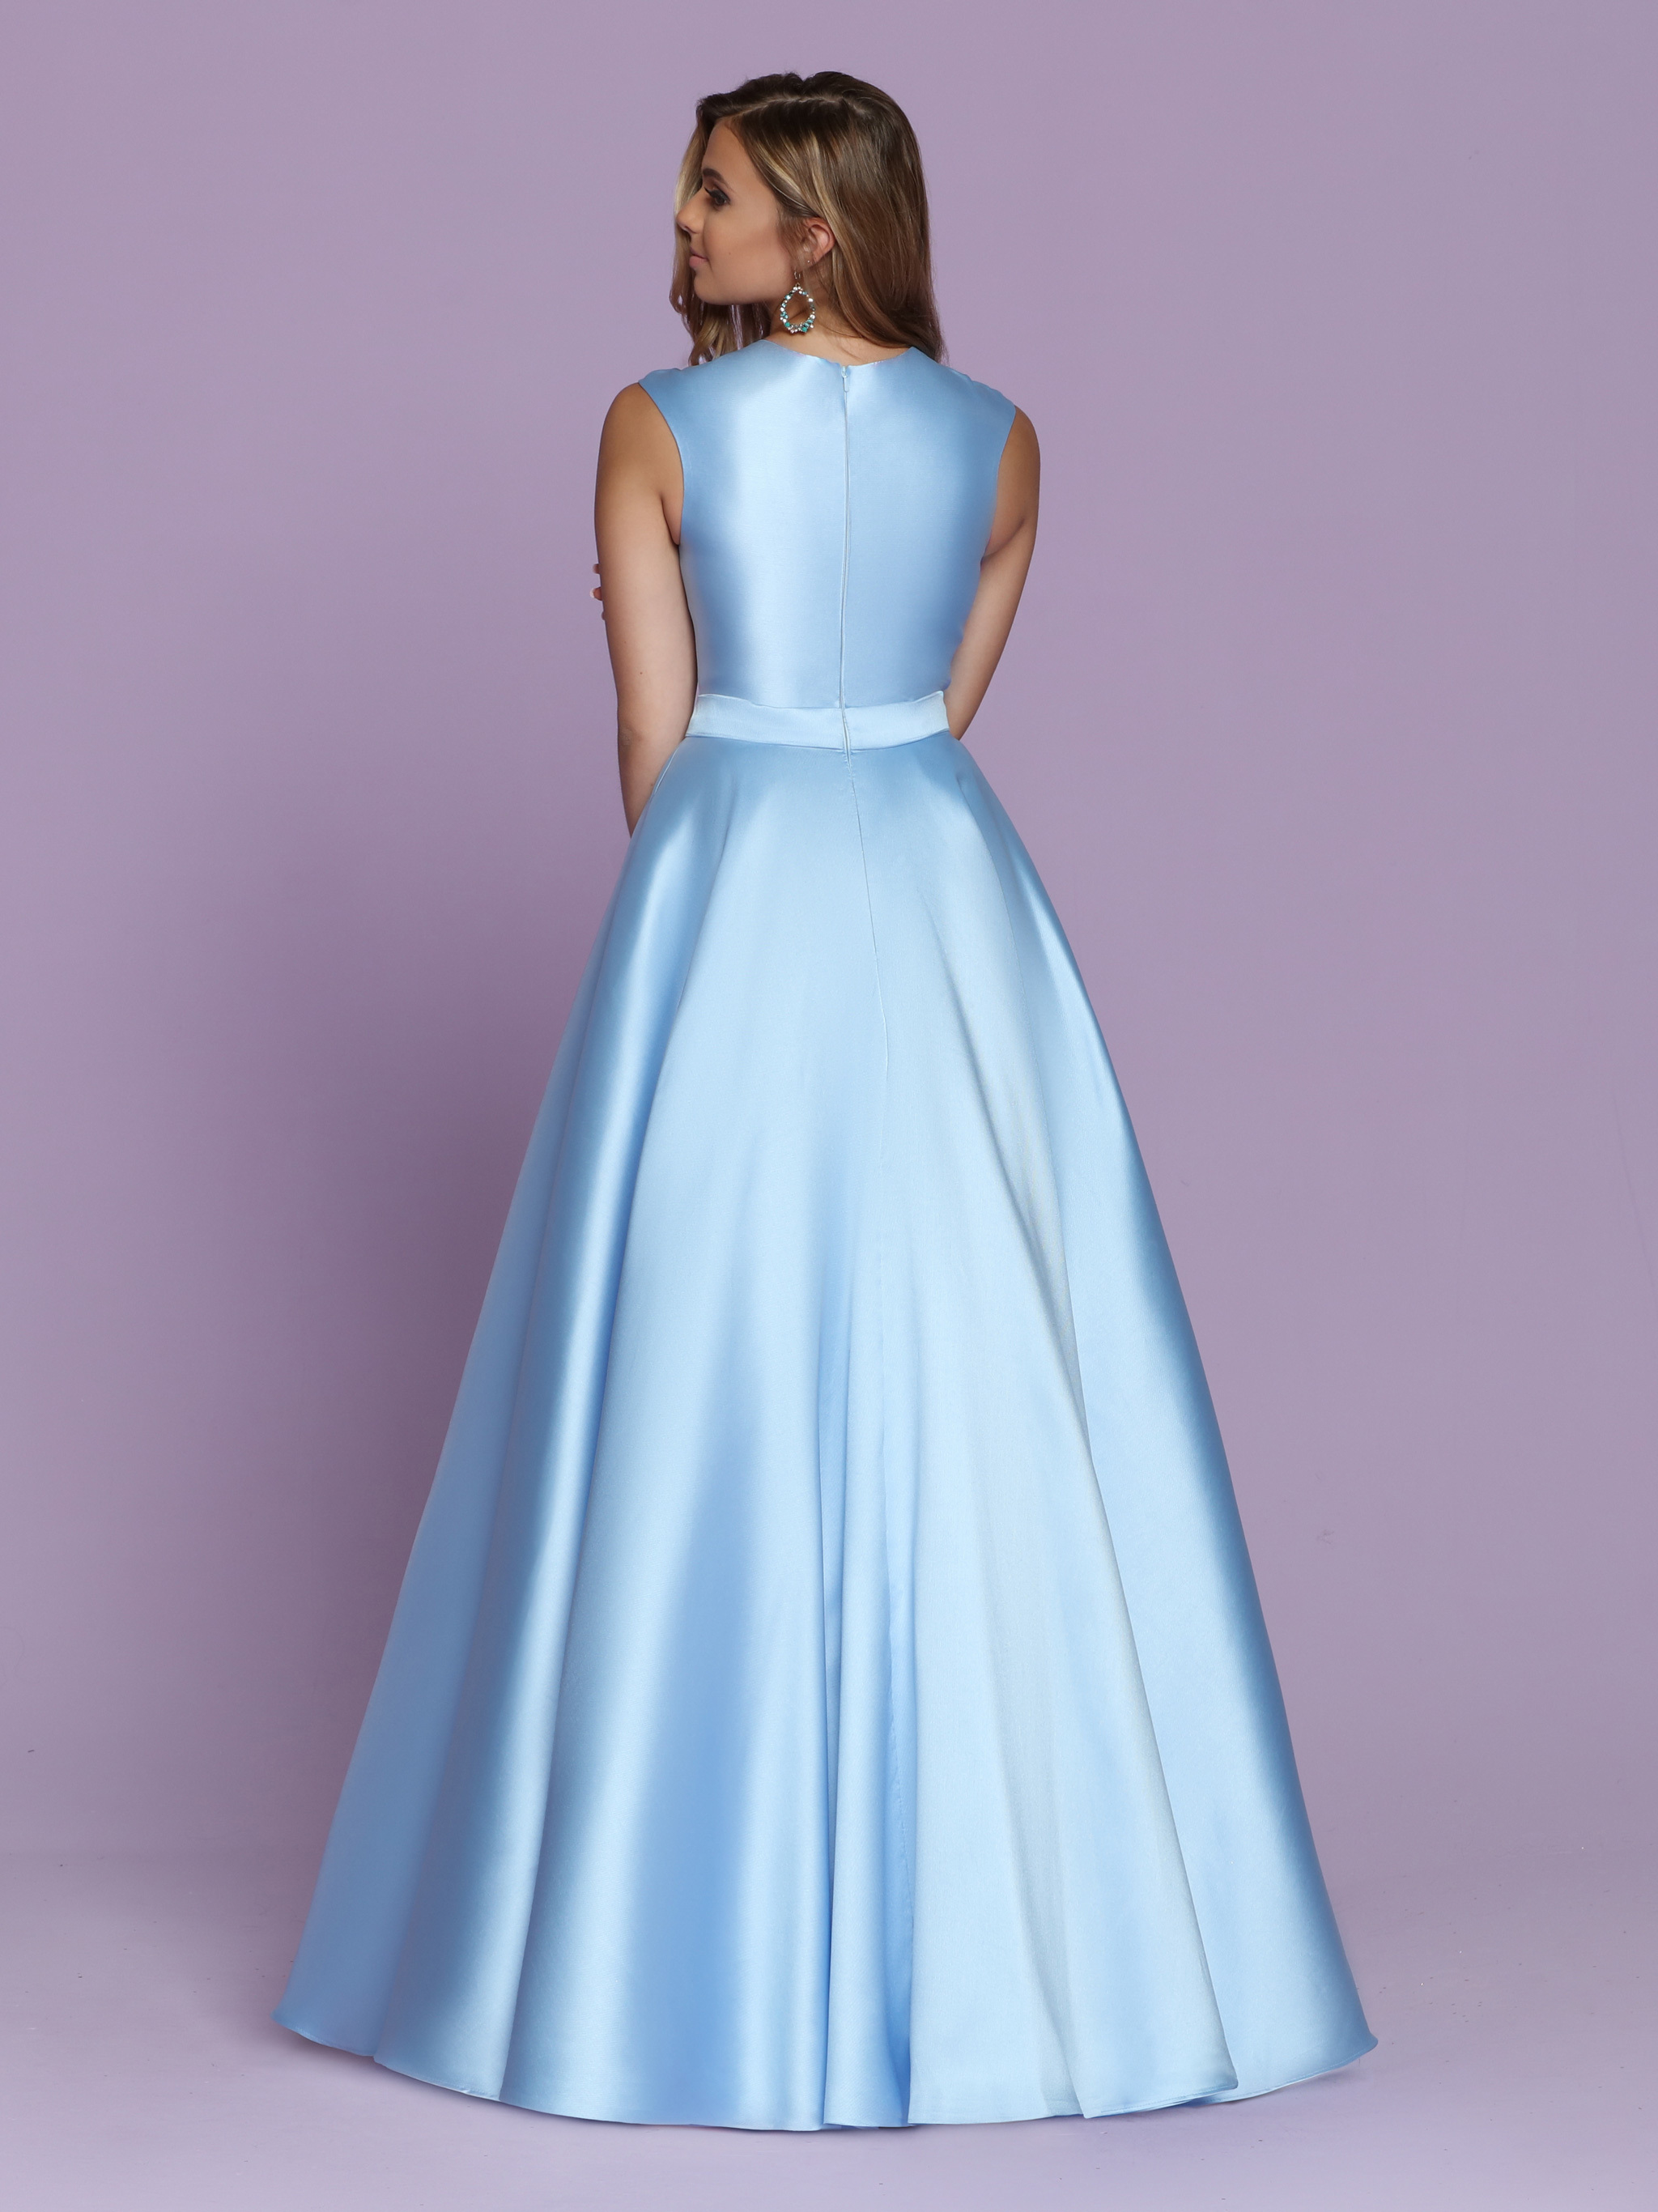 Image showing back view of style #72112